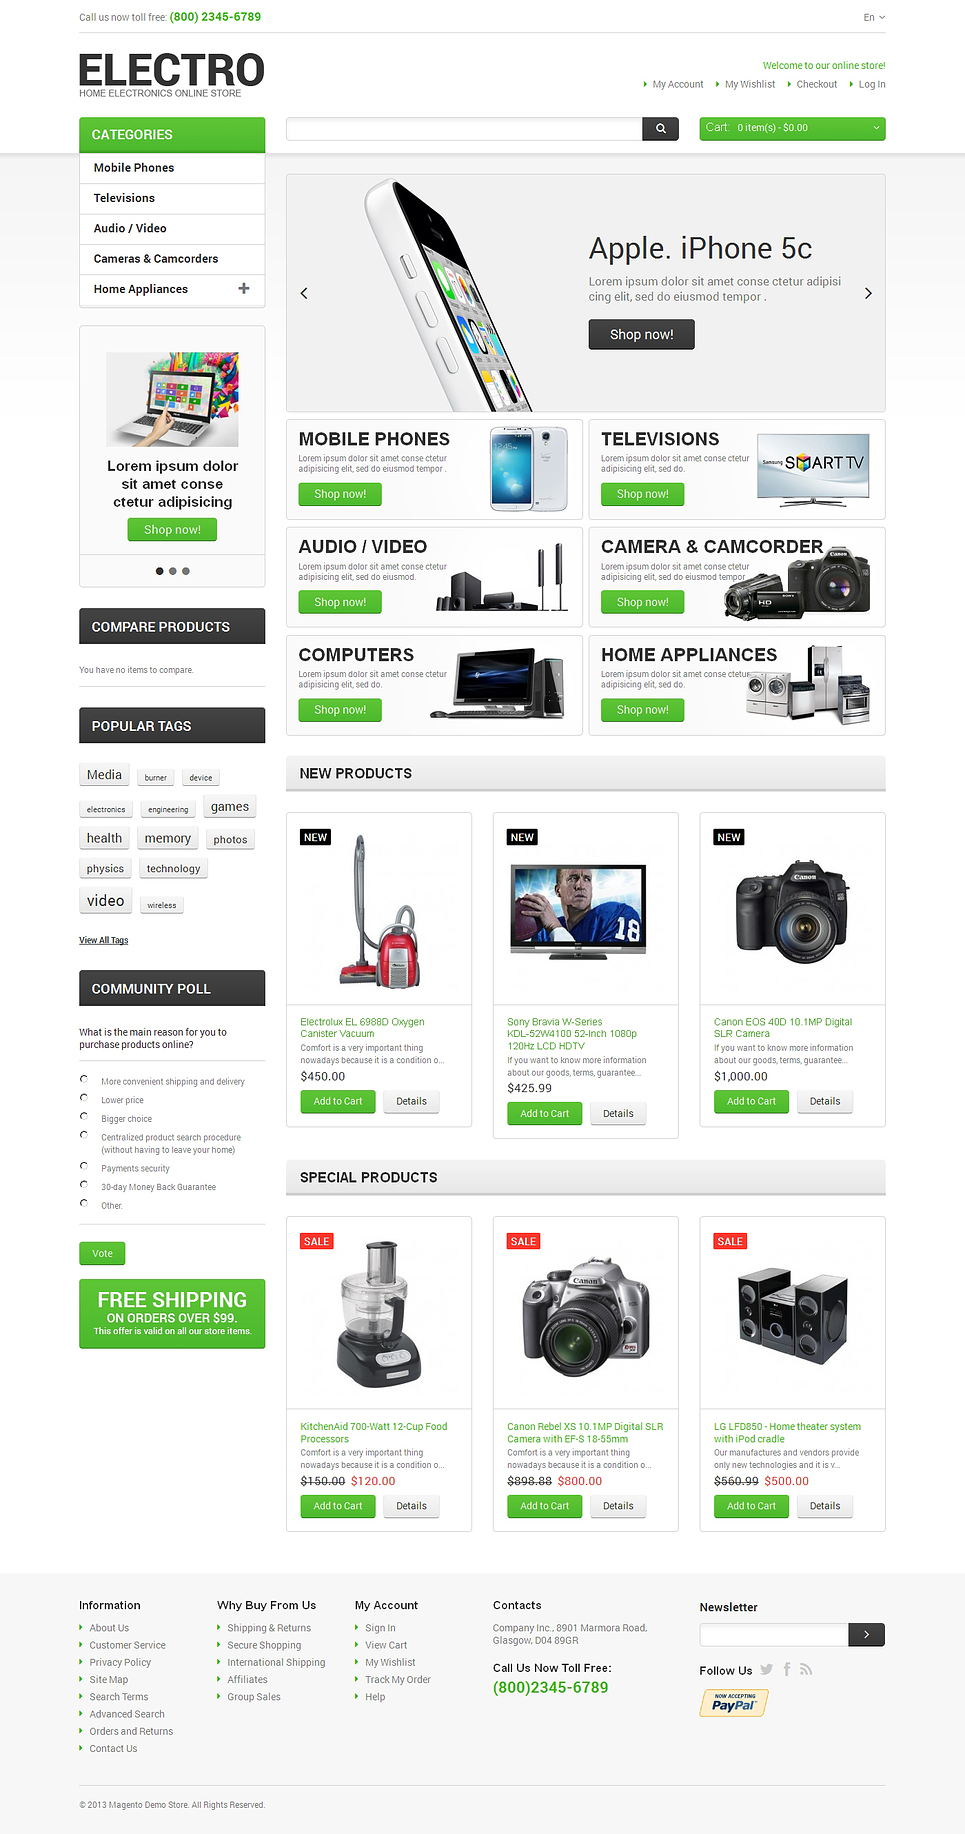 15 Of The Best Ecommerce Templates For Web Design